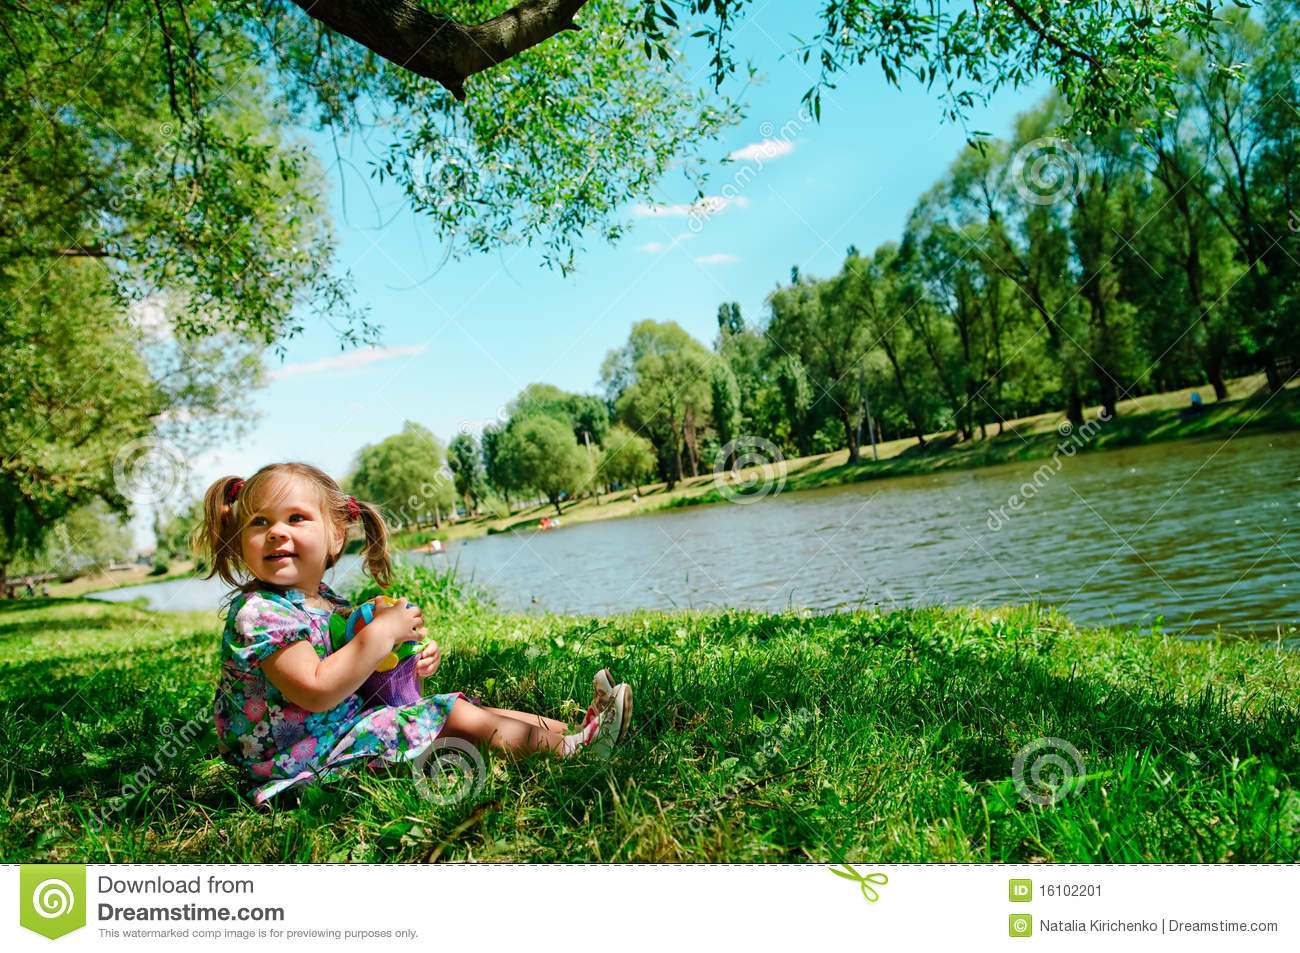 Happy Girl Sitting On River Bank Stock Image - Image: 16102201